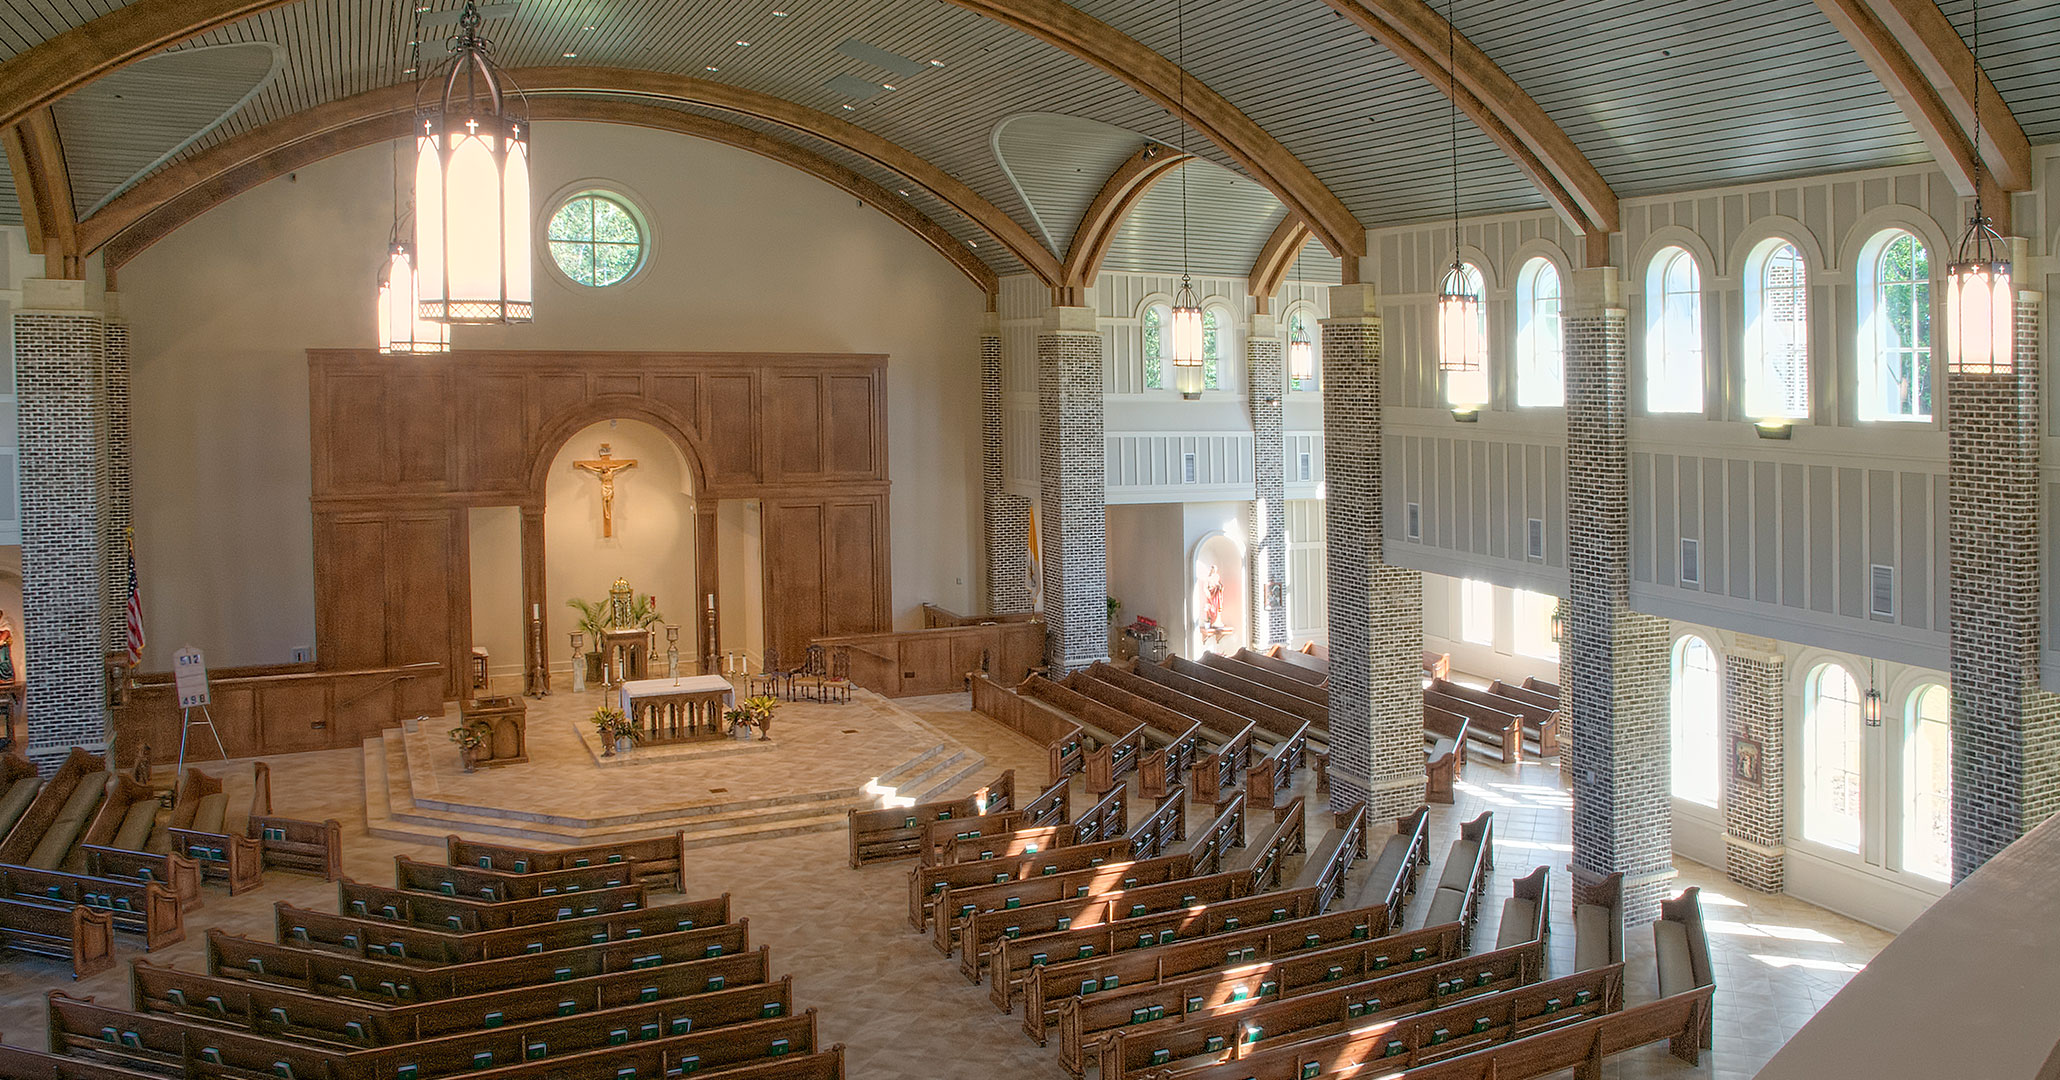 St. Anne in Richmond Hill, GA to expanded their current church footprint using Boudreaux architects.